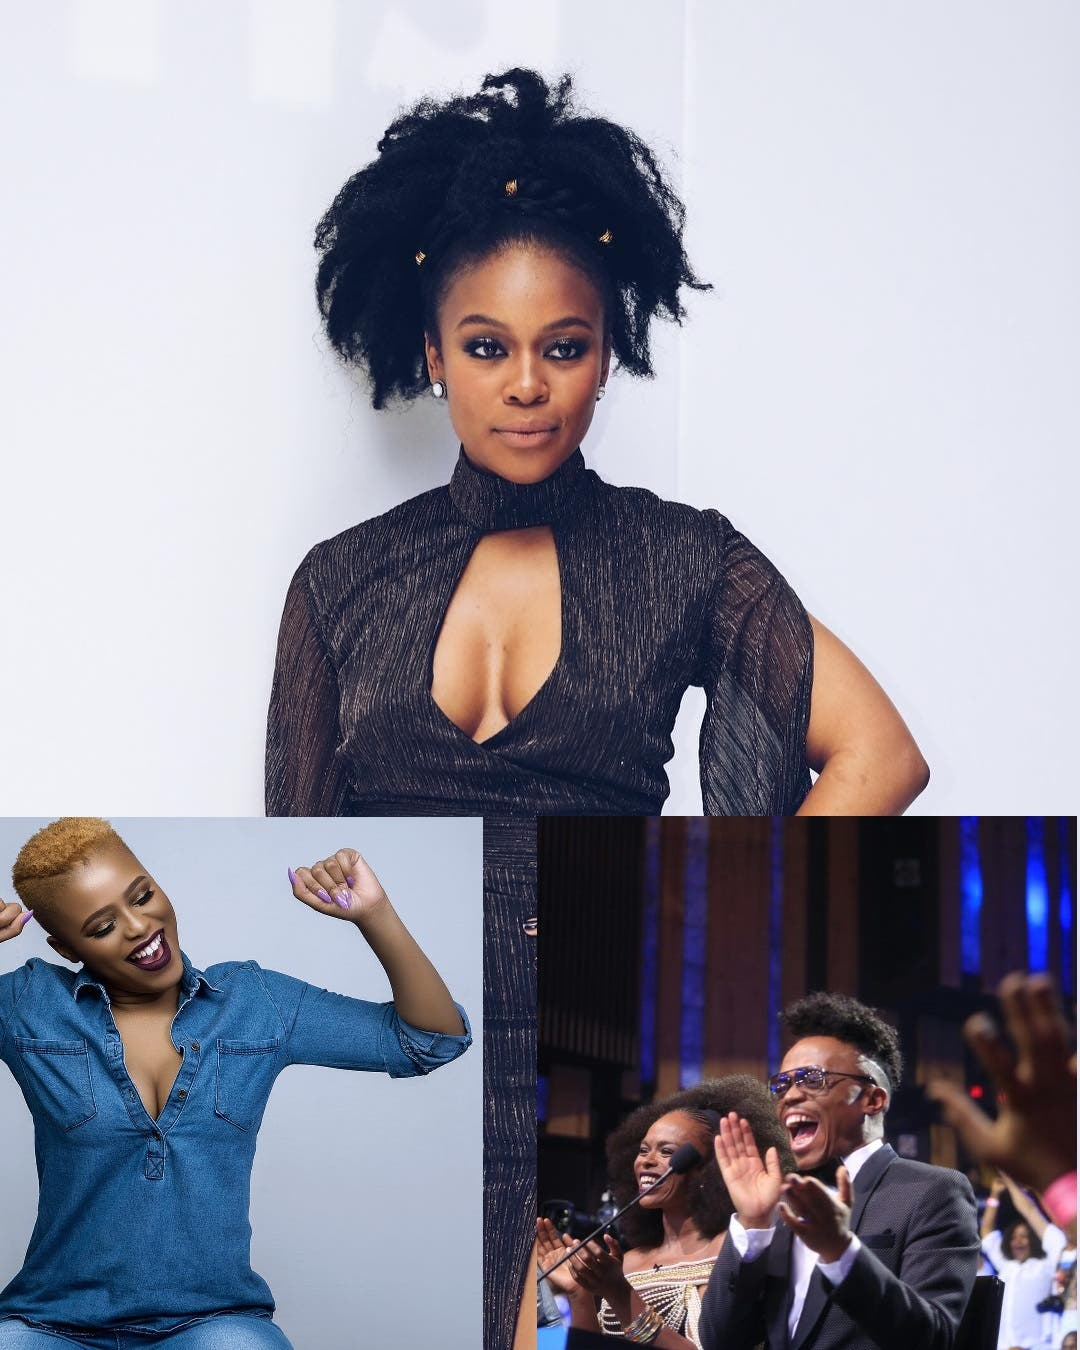 Mzansi Celebrities And Latest News - Home | Facebook